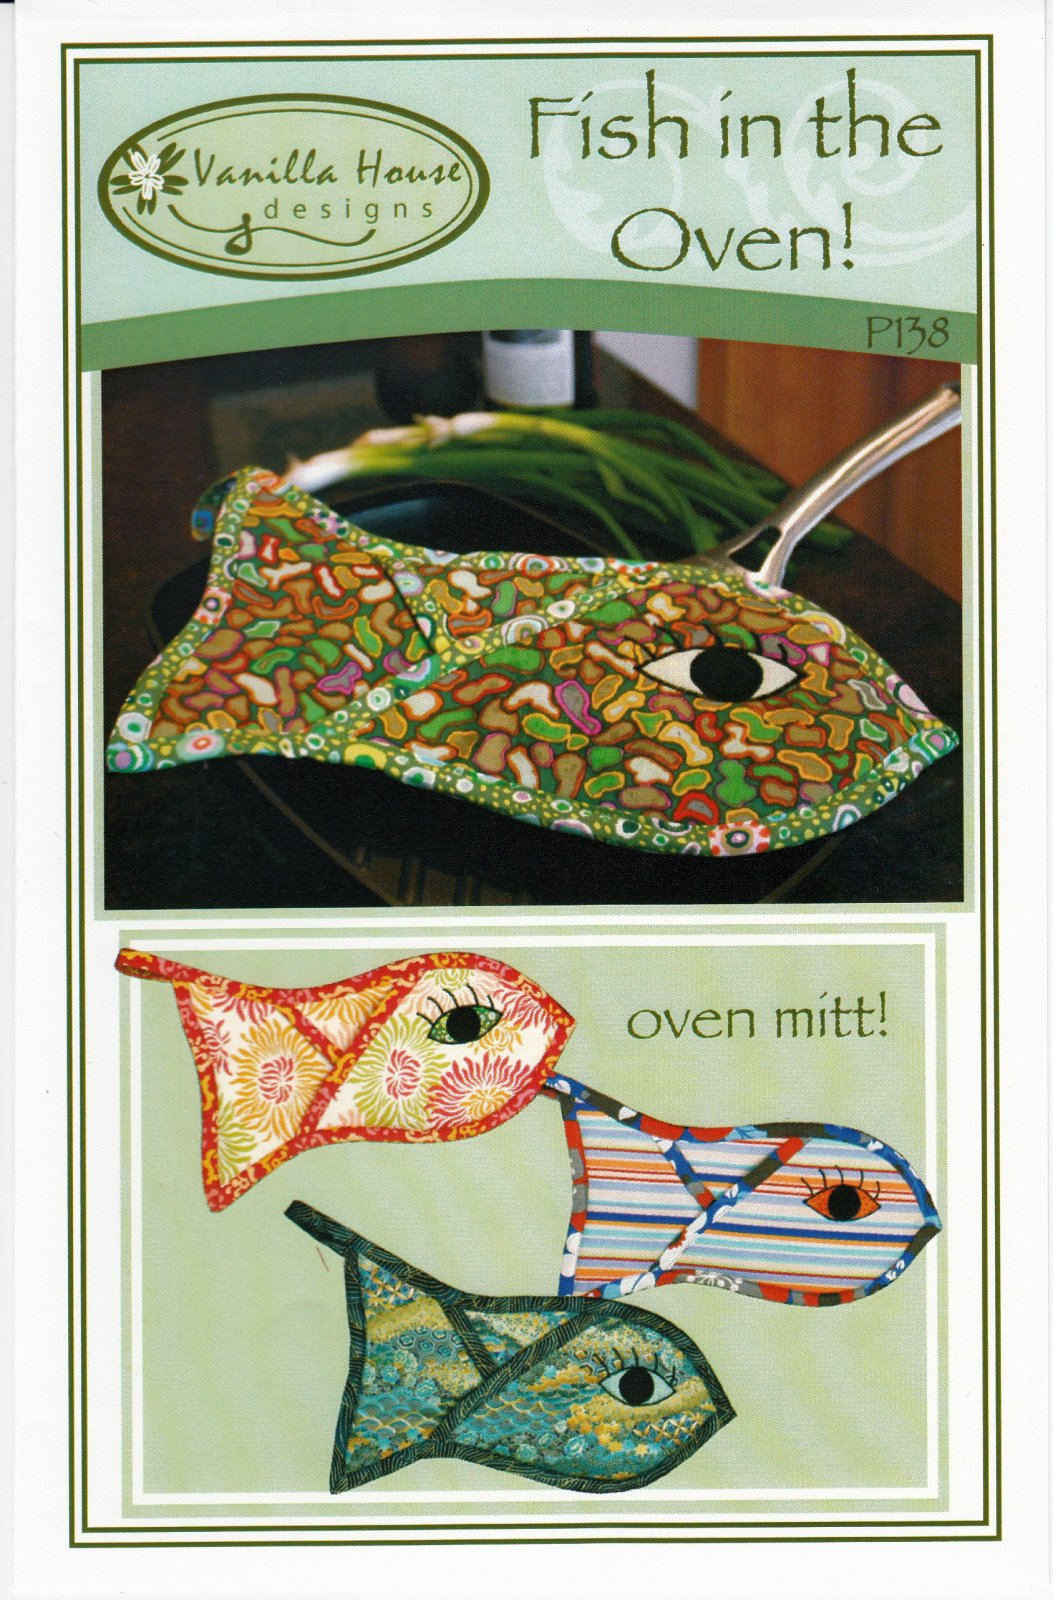 Fish In The Oven Mitt